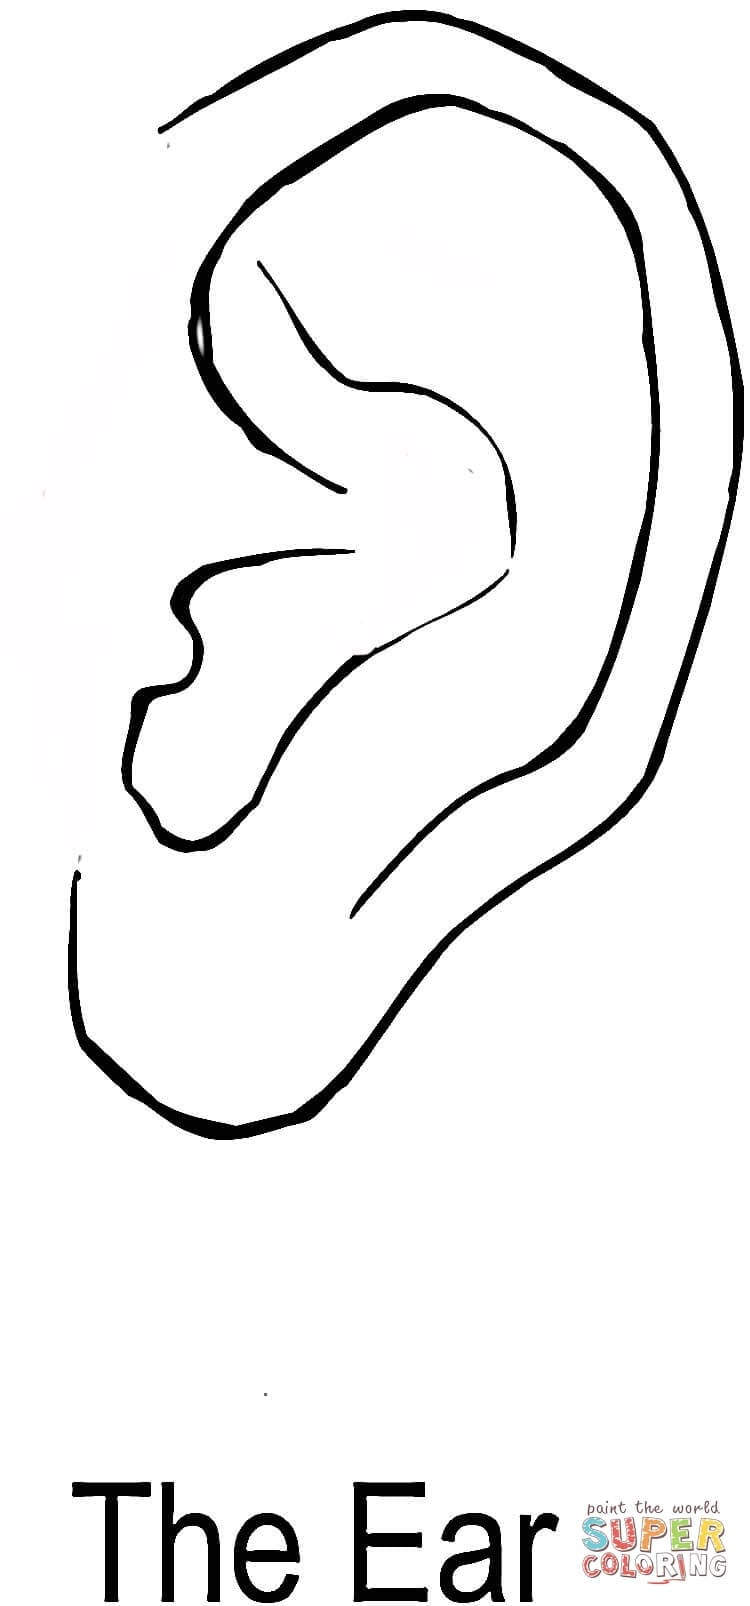 The Ear Coloring Page